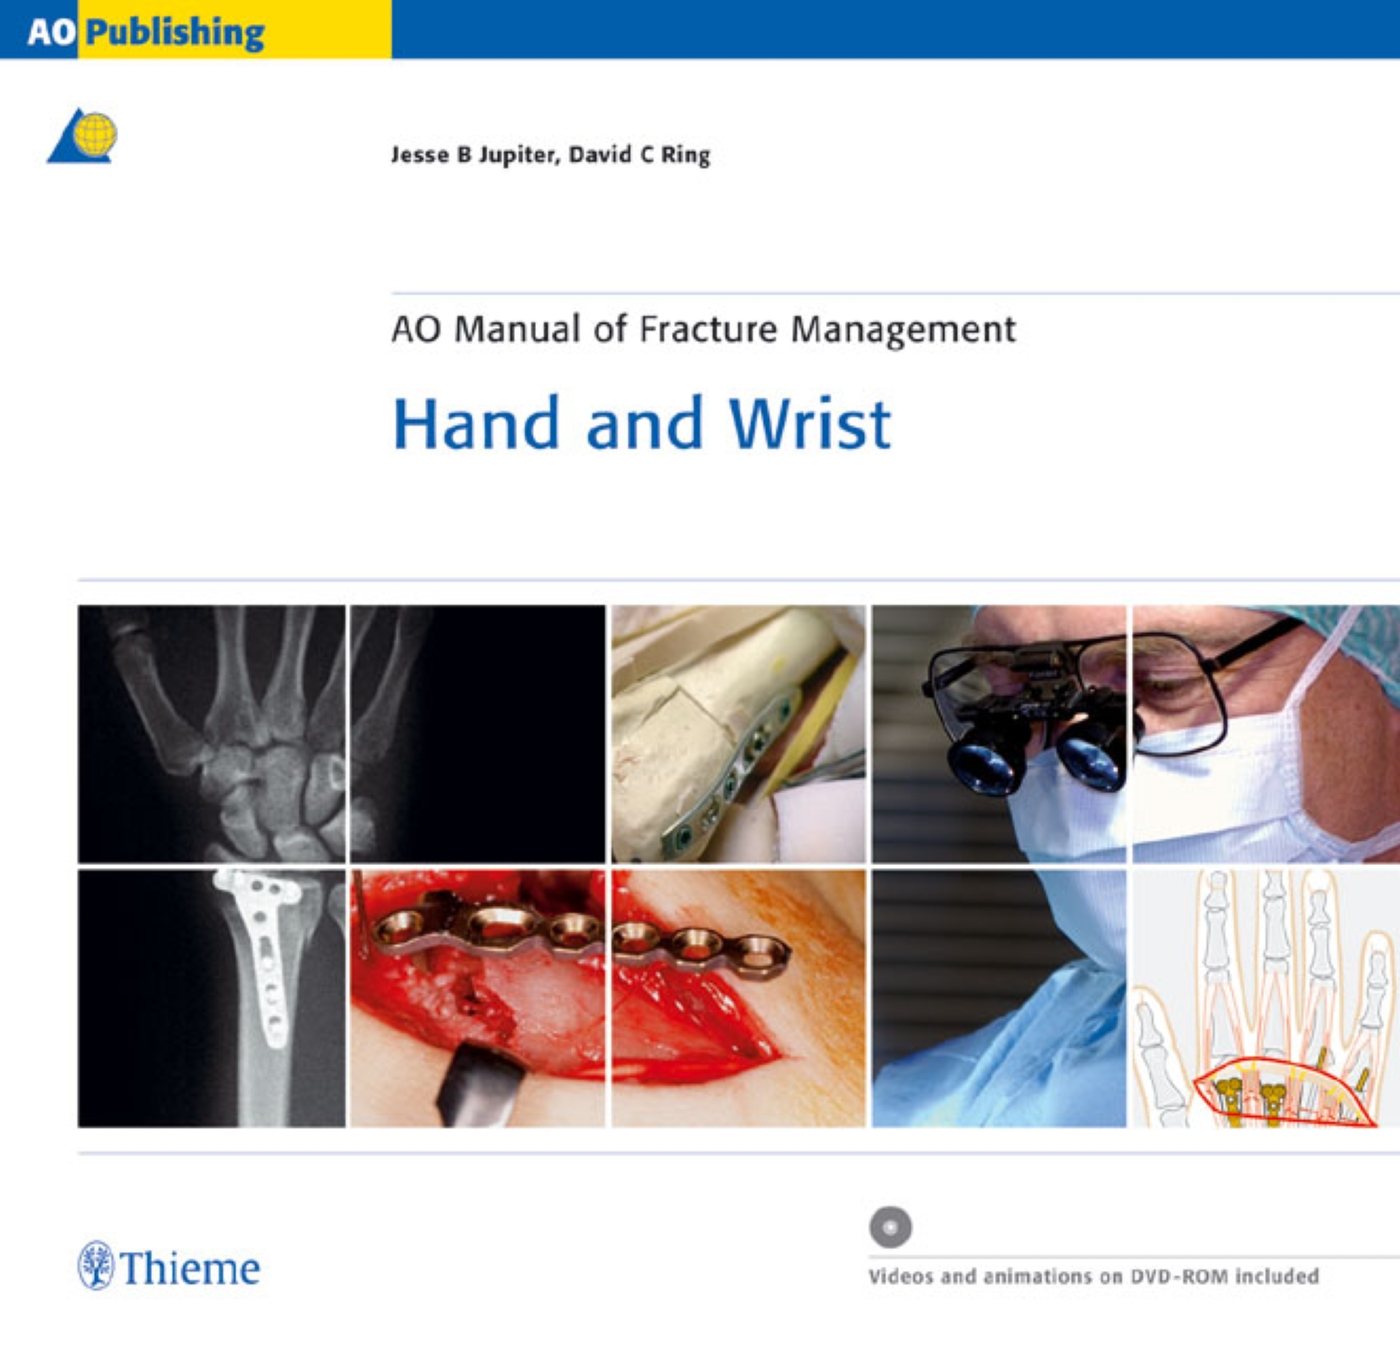 AO Manual of Fracture Management - Hand and Wrist